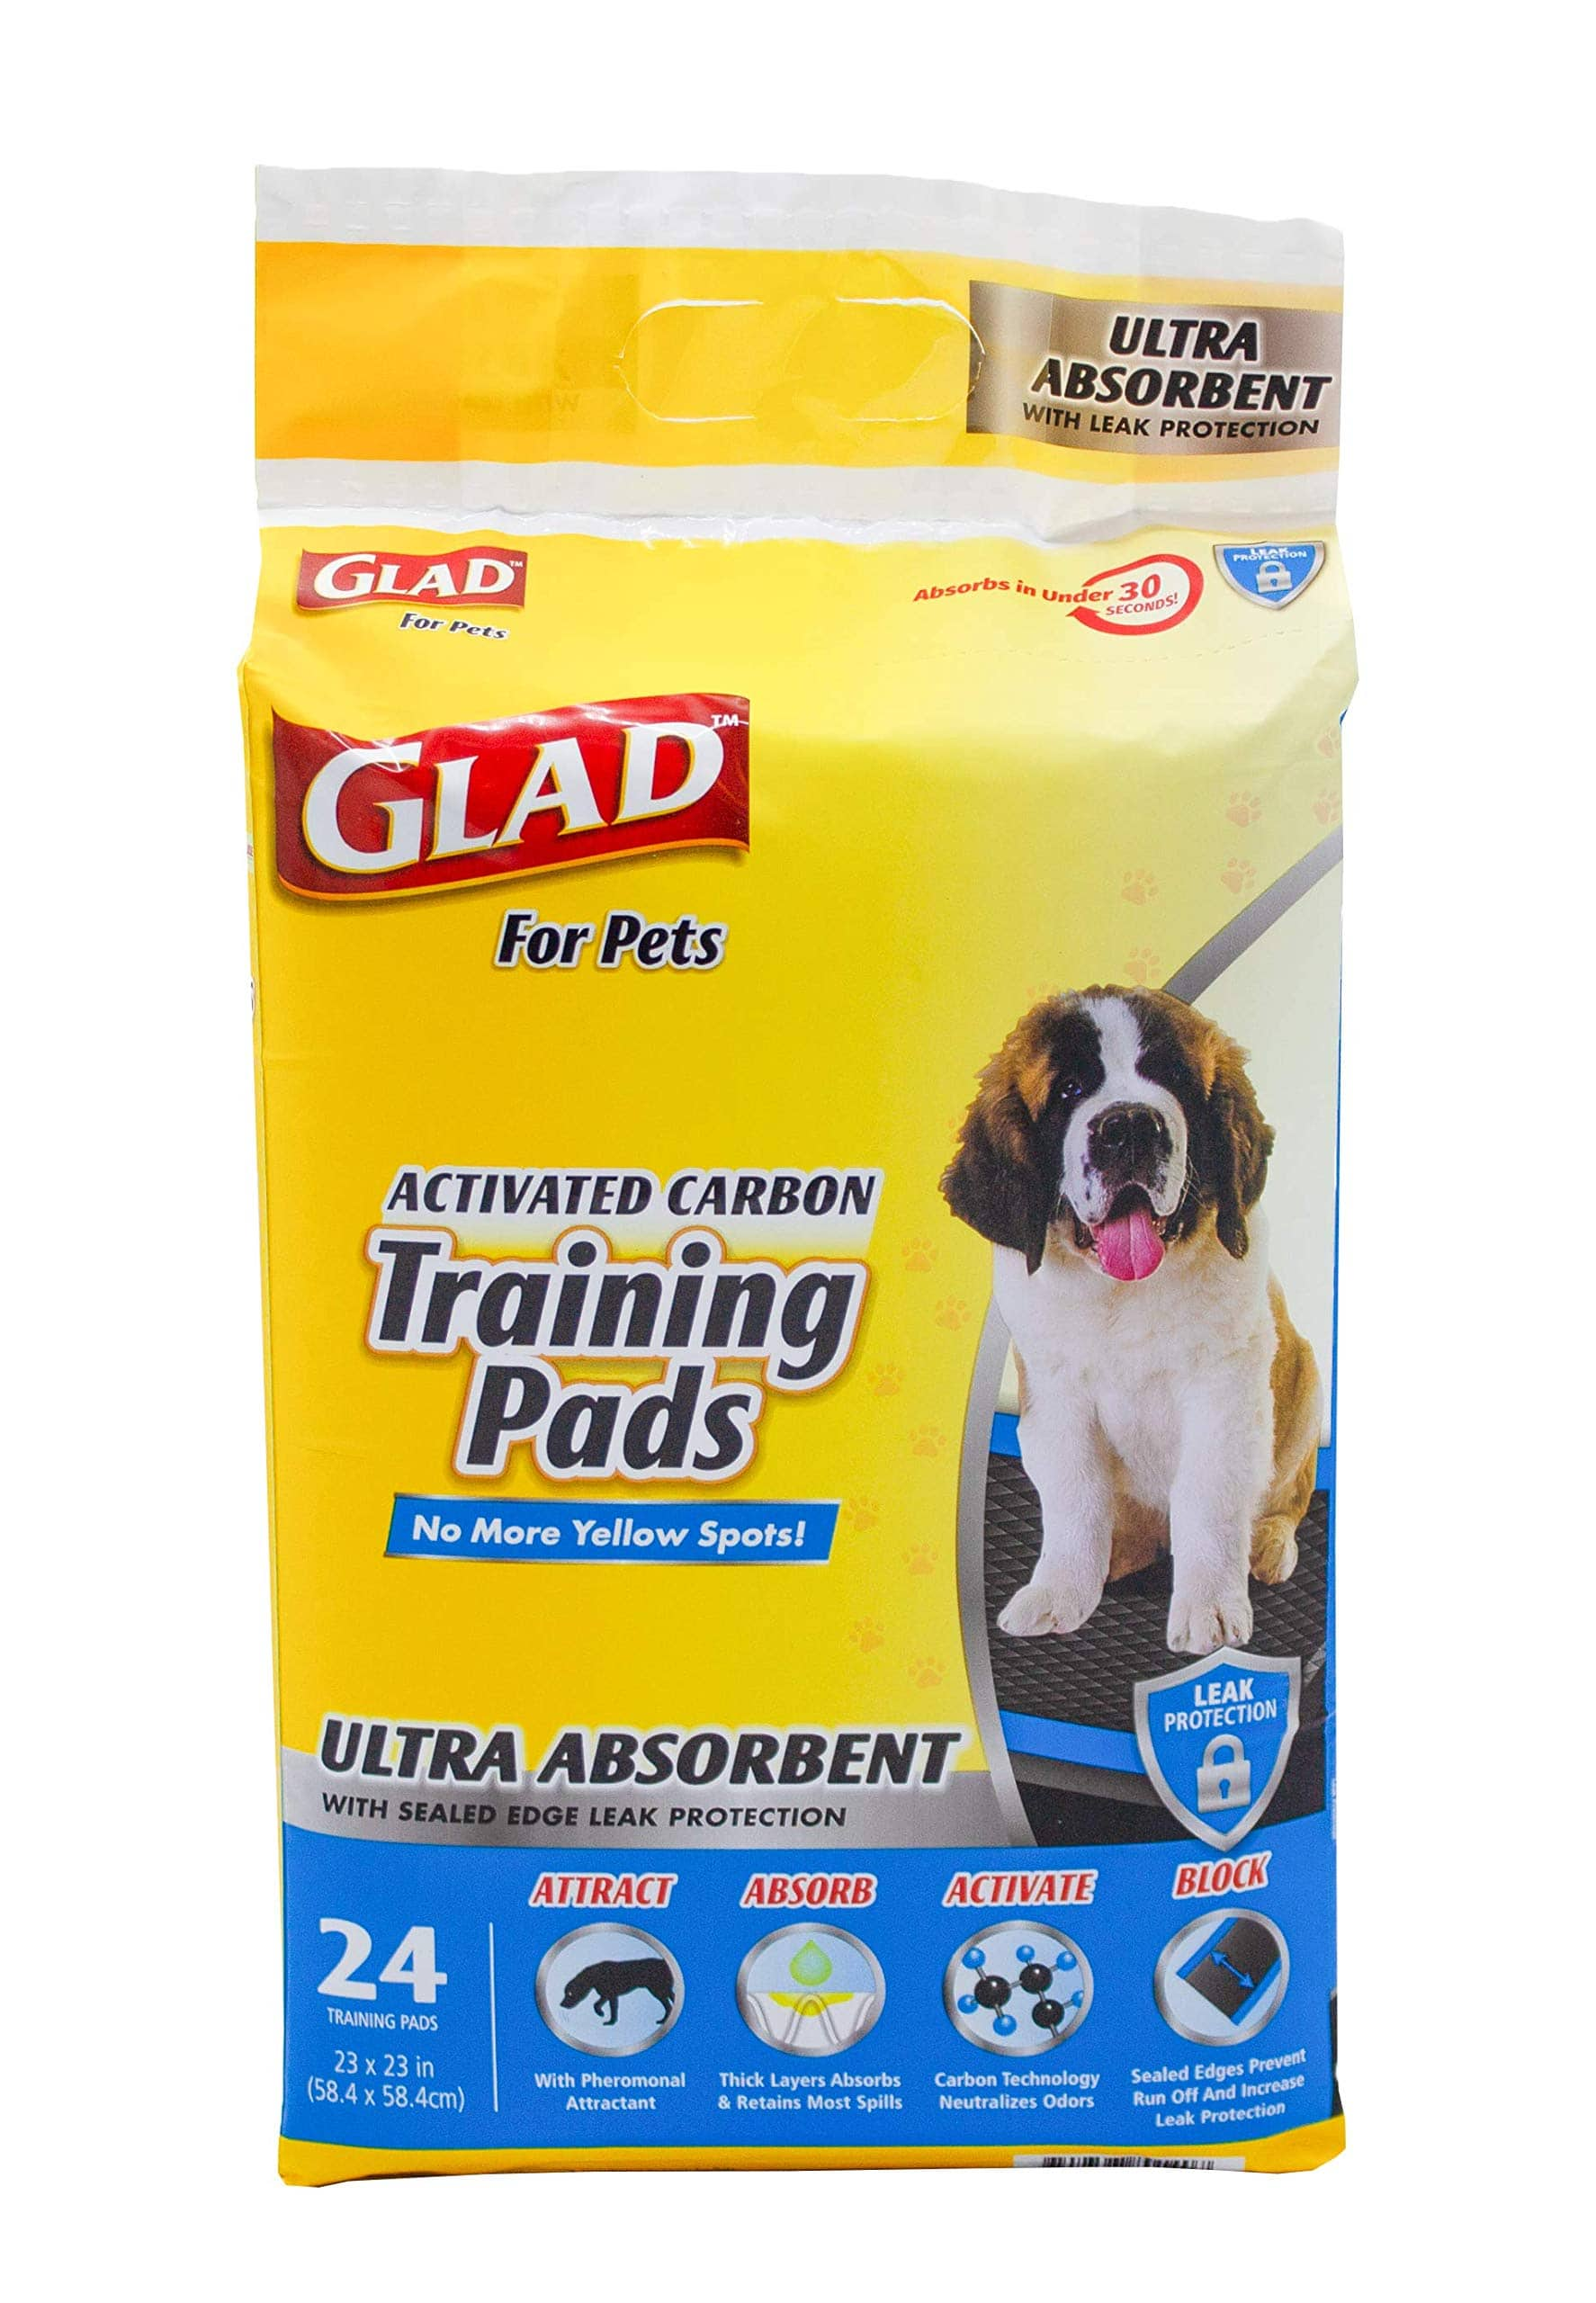 Glad for Pets Heavy Duty Ultra-Absorbent Activated Charcoal Dog Training Pads 23x23 in. 24ct $3.16 after coupon at Amazon.com